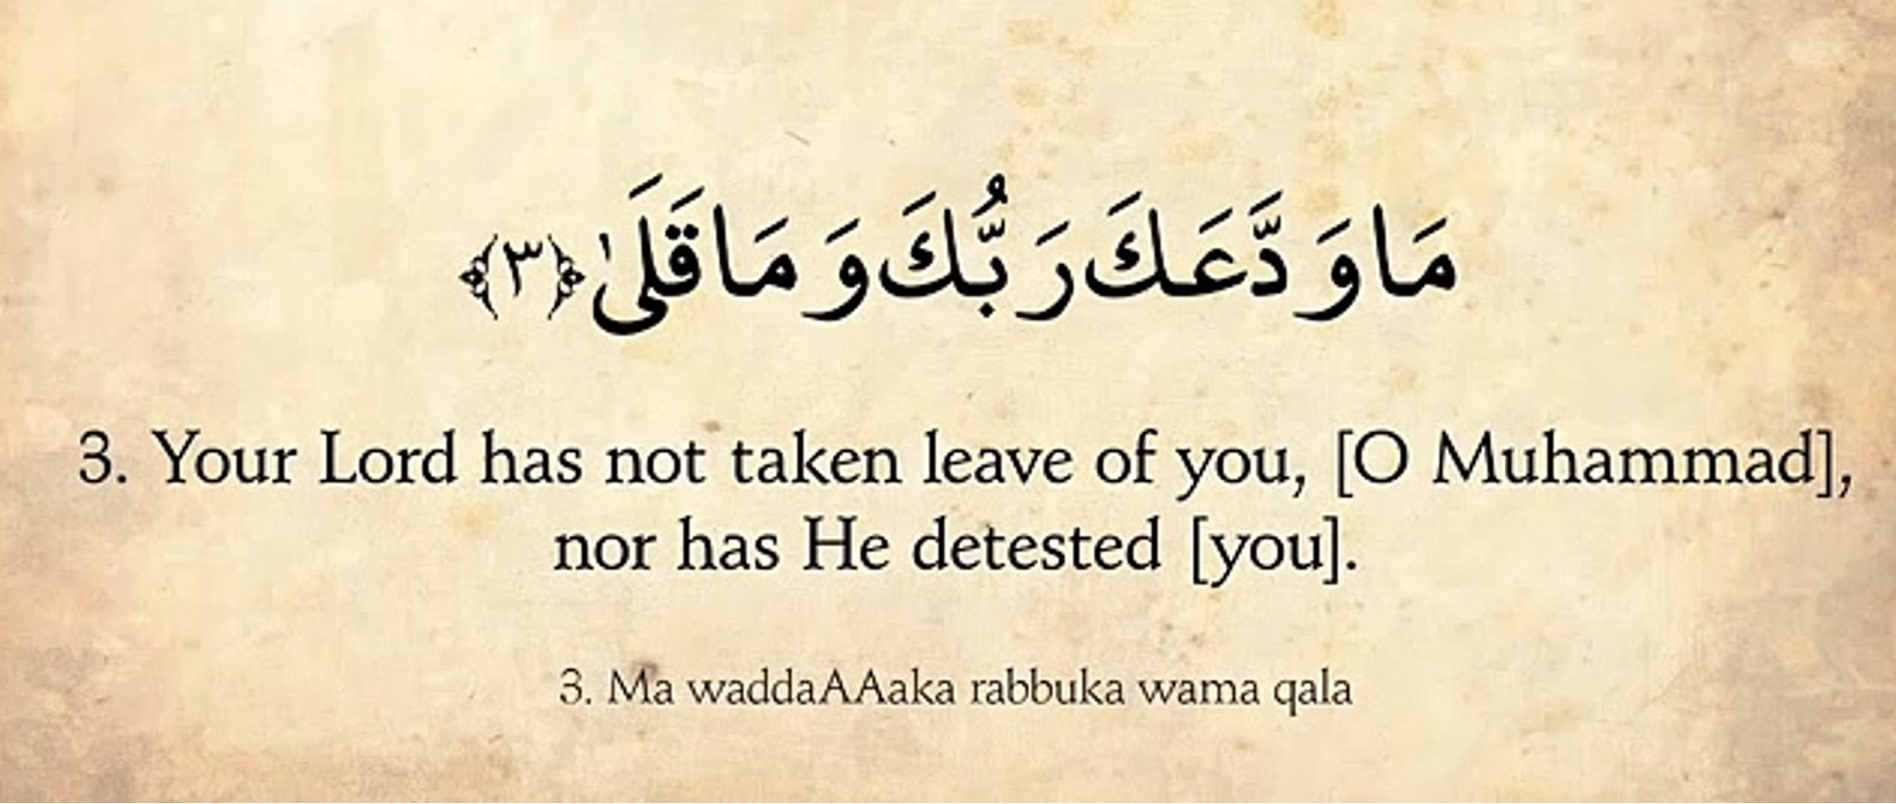 Your Lord has not taken leave of you